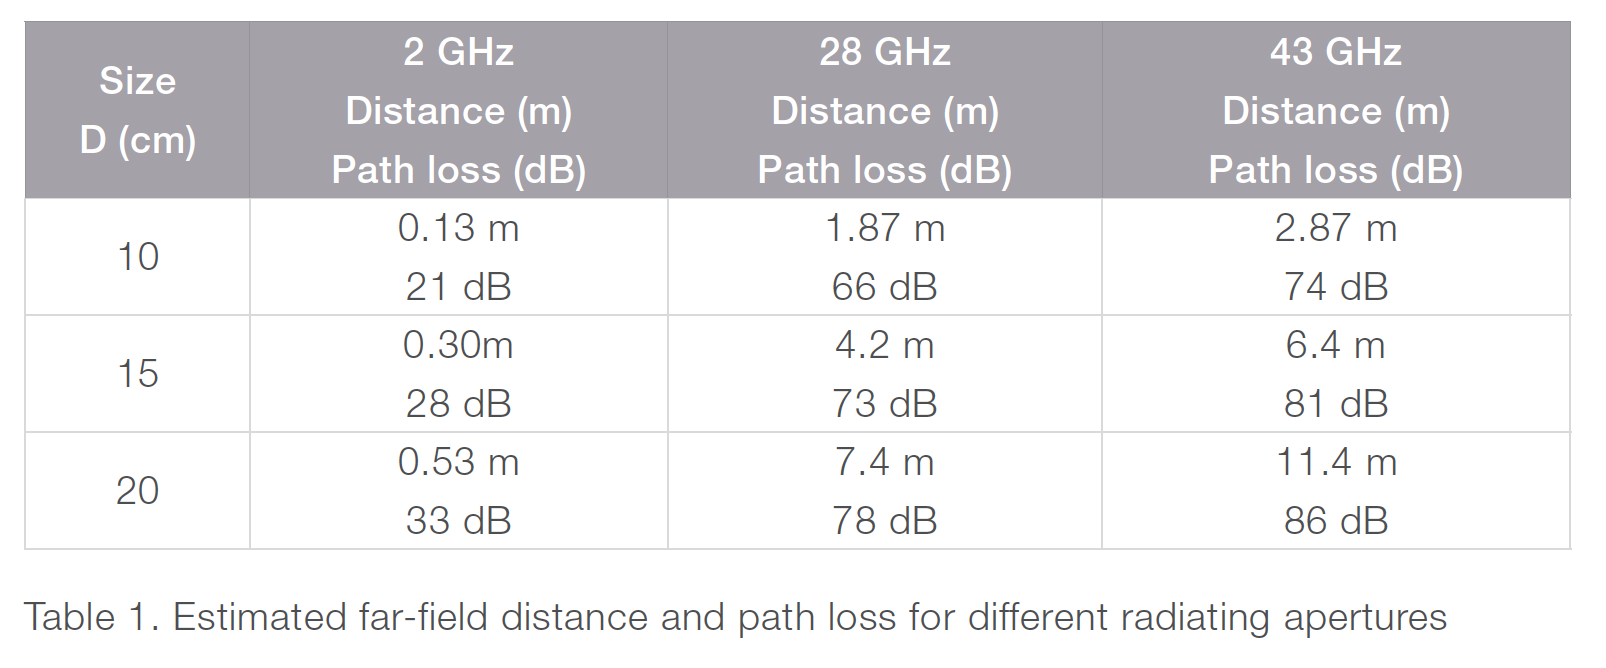 Table 1. Estimated far-field distance and path loss for different radiating apertures